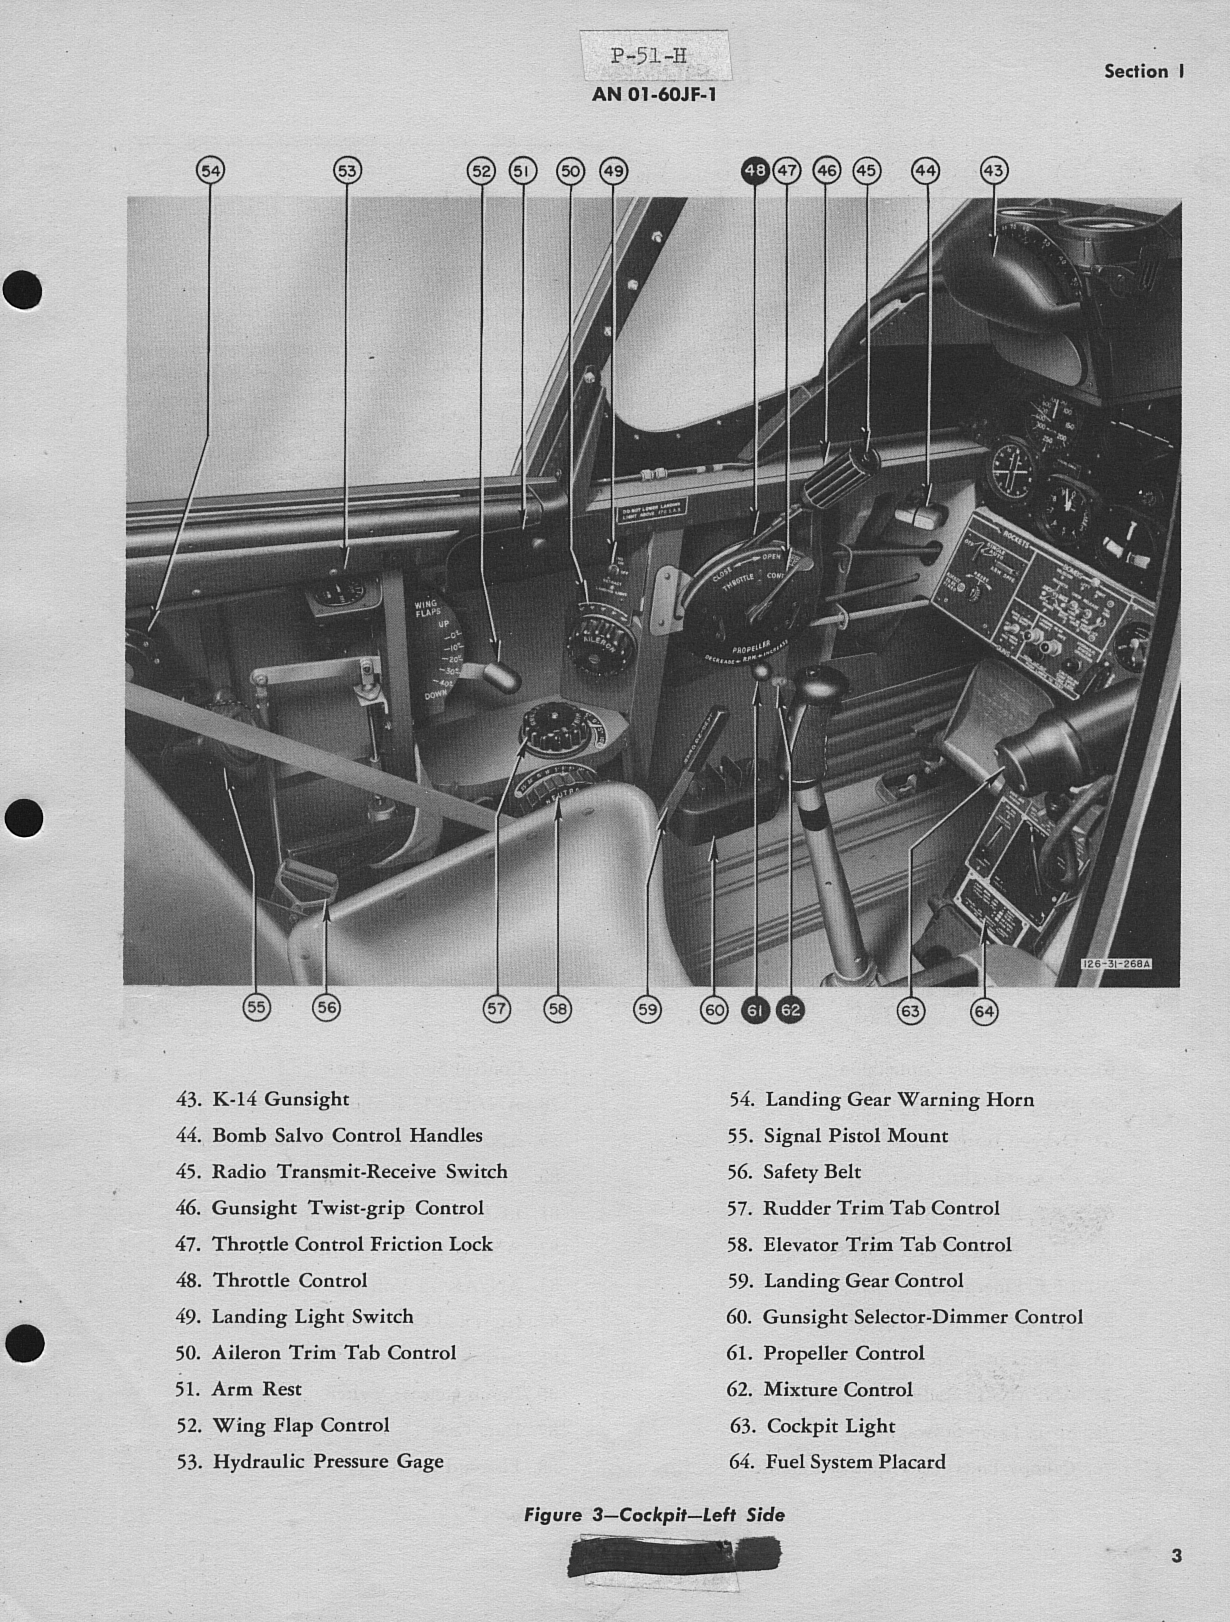 Sample page 7 from AirCorps Library document: Pilot's Handbook for P-51H-1, -5, and -10 Airplanes